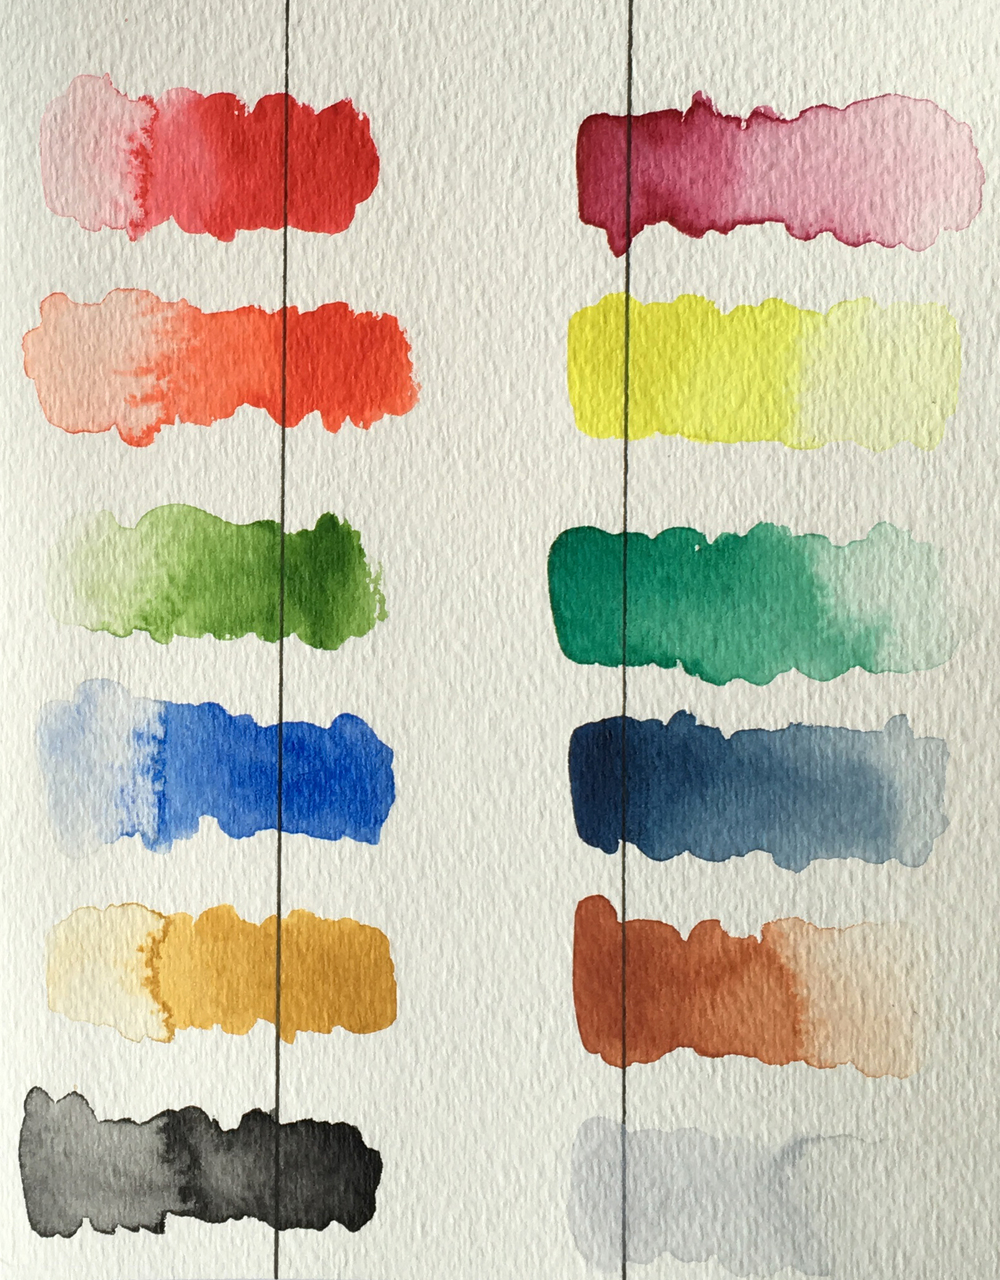 Color swatches from a Gansai Tambi Watercolor Set, nicely transparent, and blend easily.